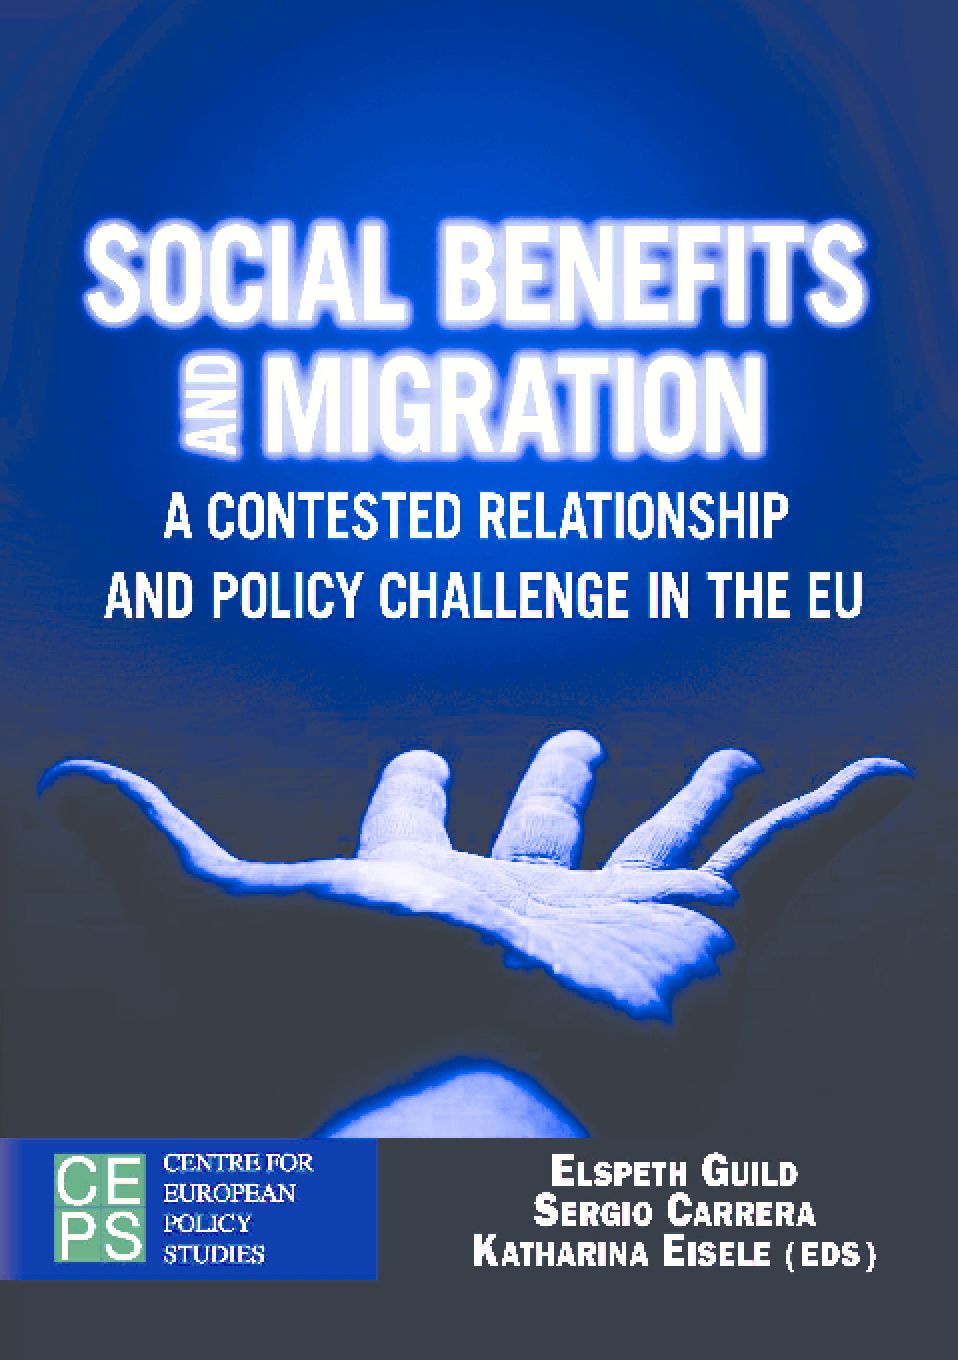 Social Benefits And Migration: A Contested Relationship and Policy Challenge in the EU